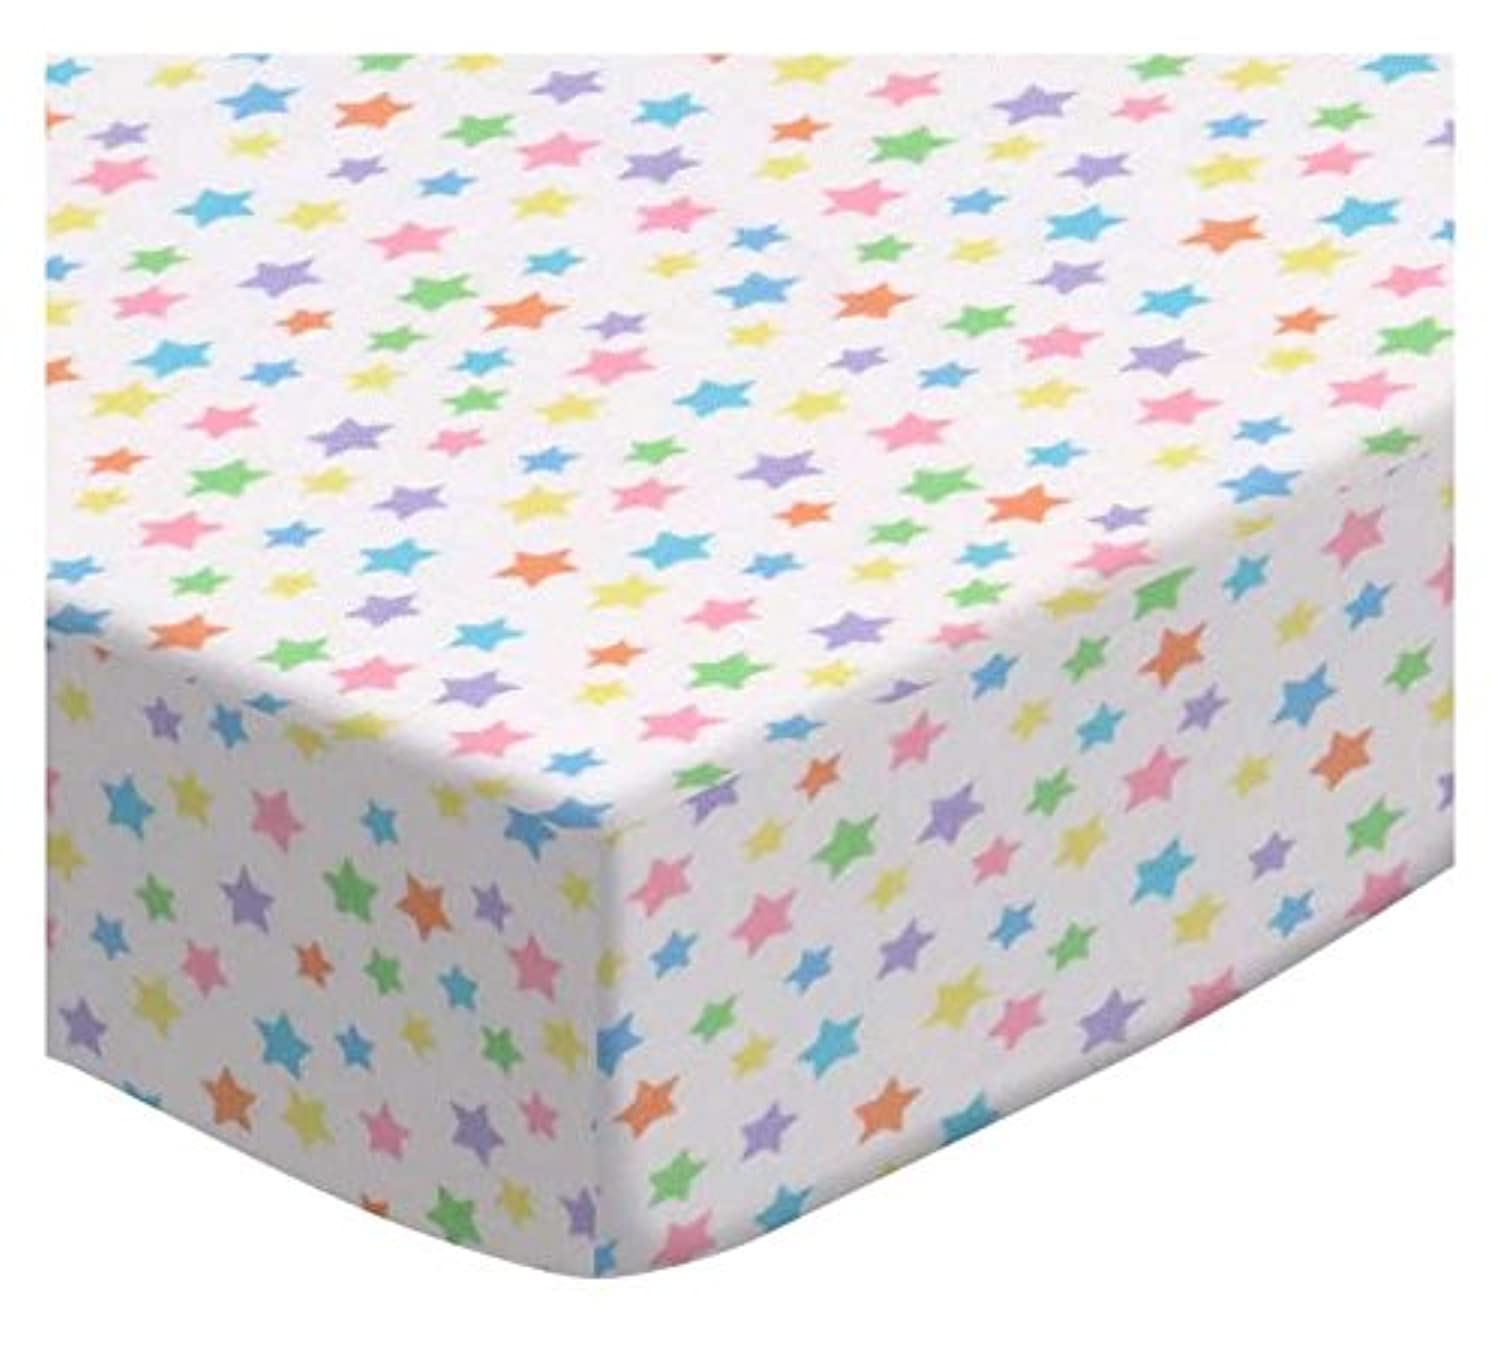 SheetWorld Fitted Pack N Play (Graco) Sheet - Pastel Colorful Stars Woven - Made In USA by sheetworld